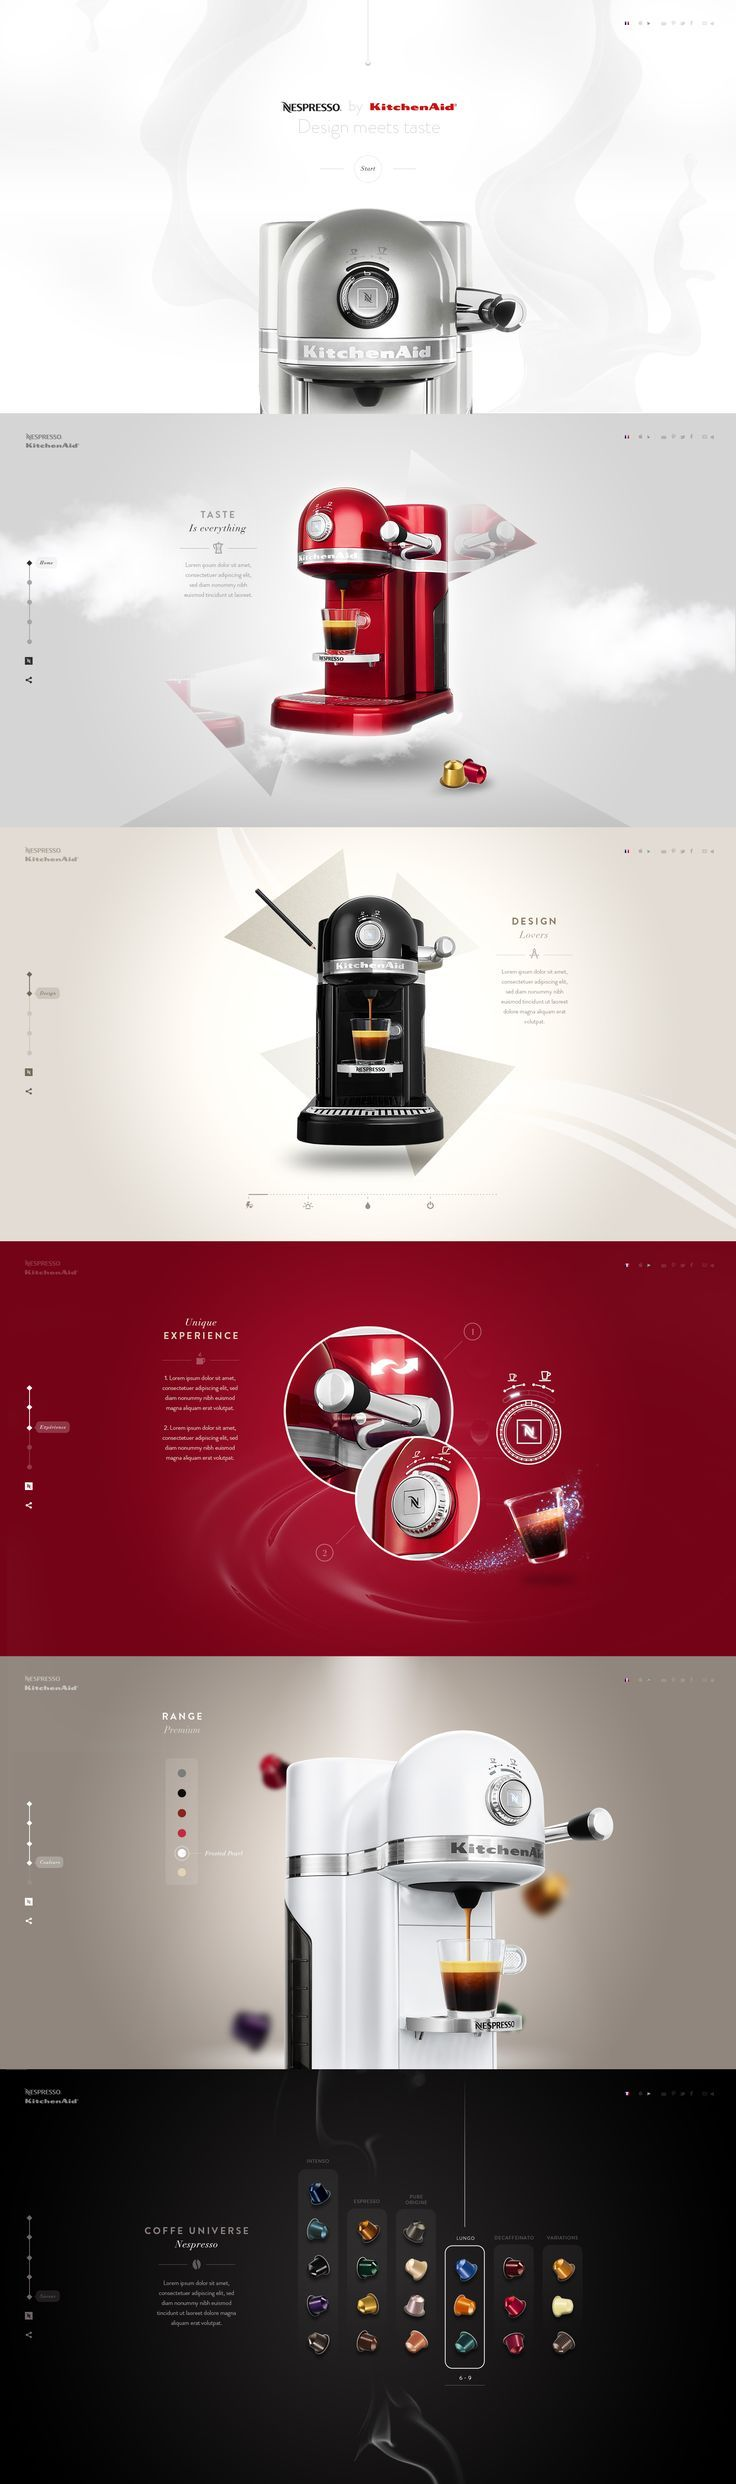 Modern & Trendy Web Designs - Nespresso by Kitchenaid by Steve Fraschini